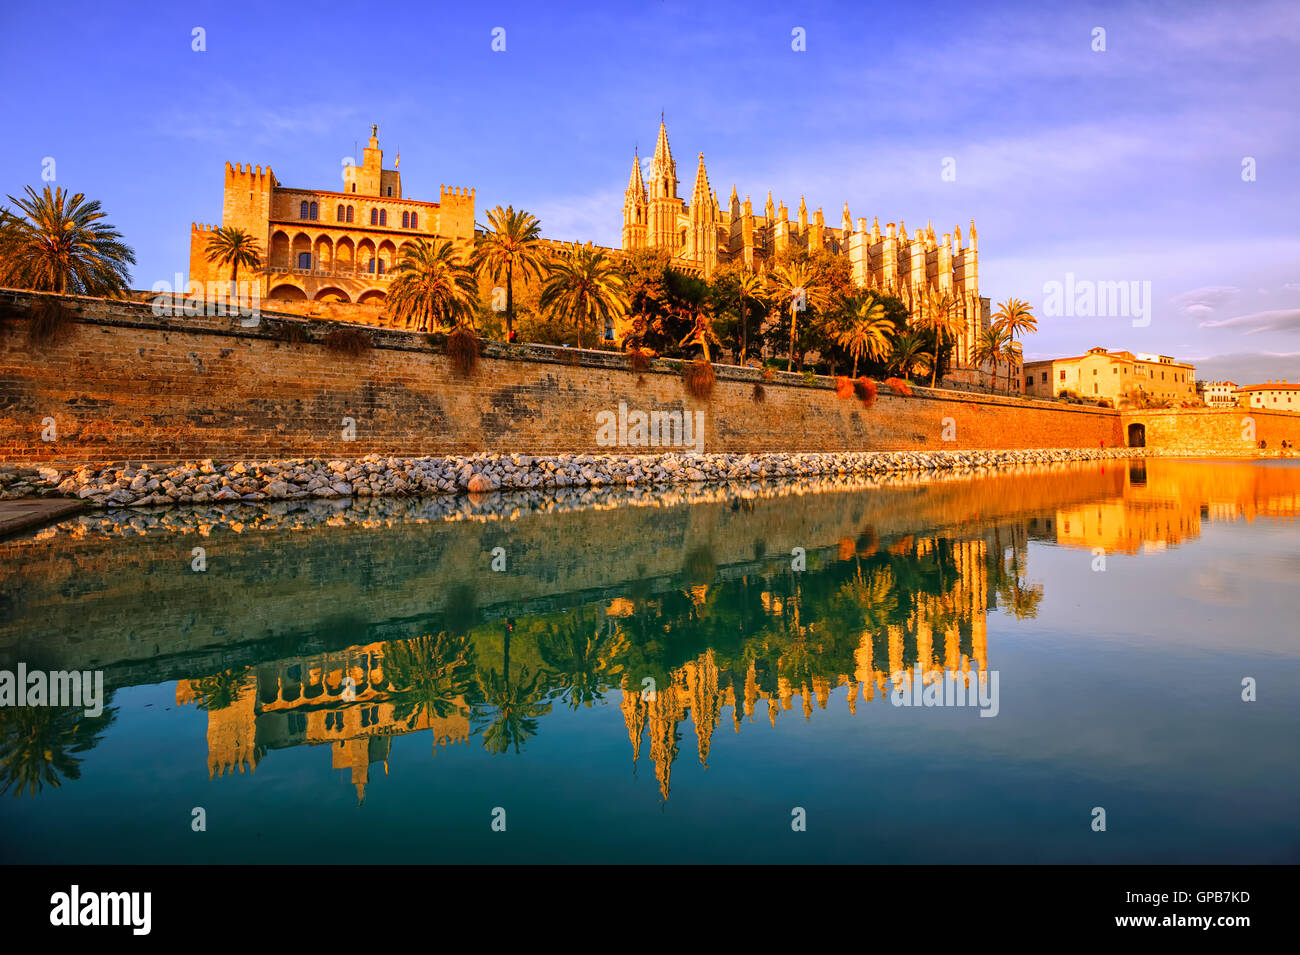 Gothic cathedral La Seu in Palma de Mallorca, Spain, reflecting in the lake water in sunset light Stock Photo